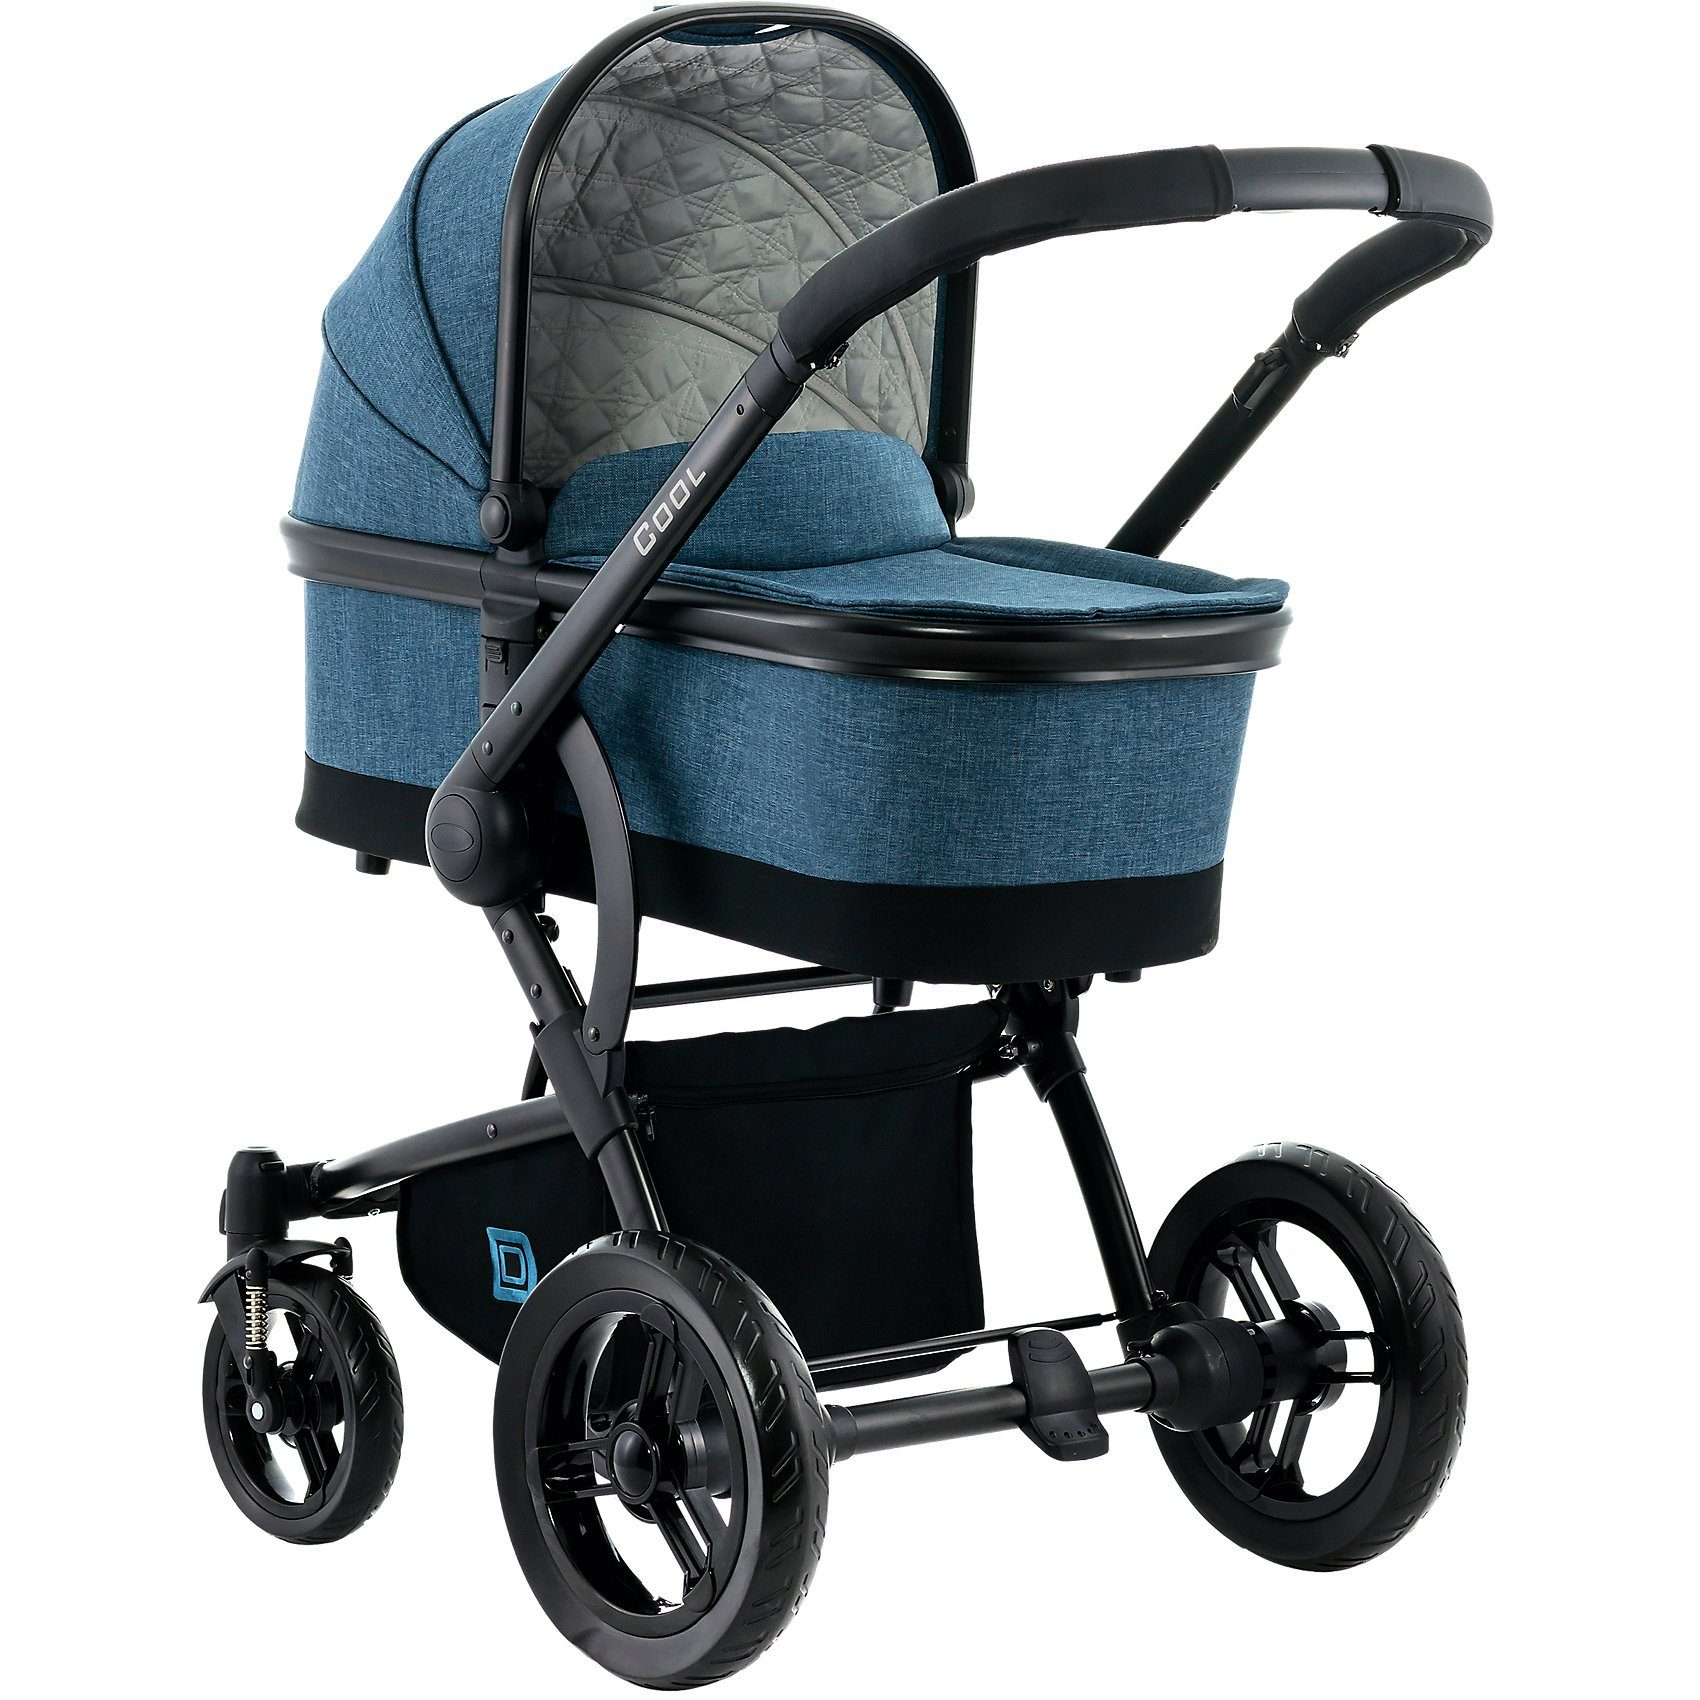 Moon Kombi Kinderwagen COOL City, blue/melange